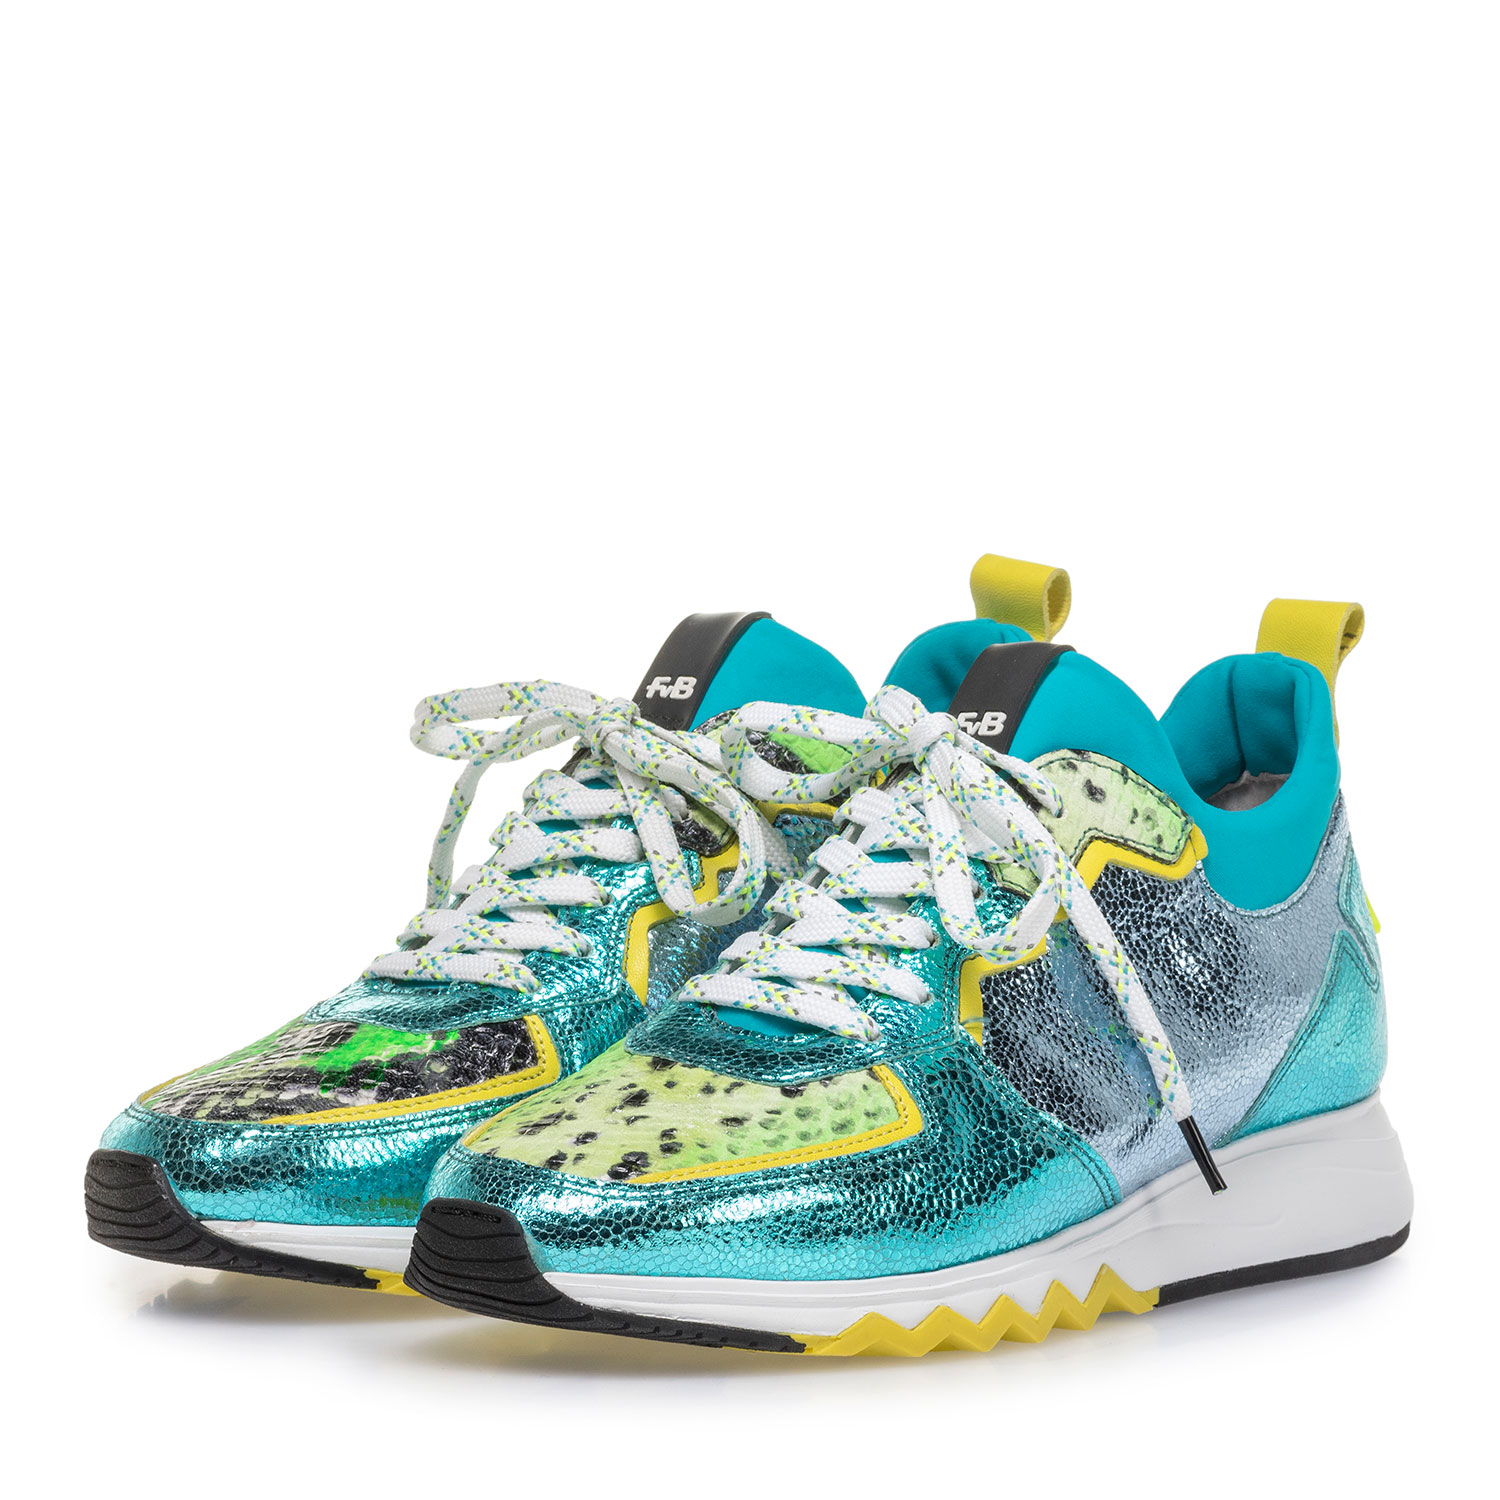 85309/08 - Sneaker with light blue metallic print